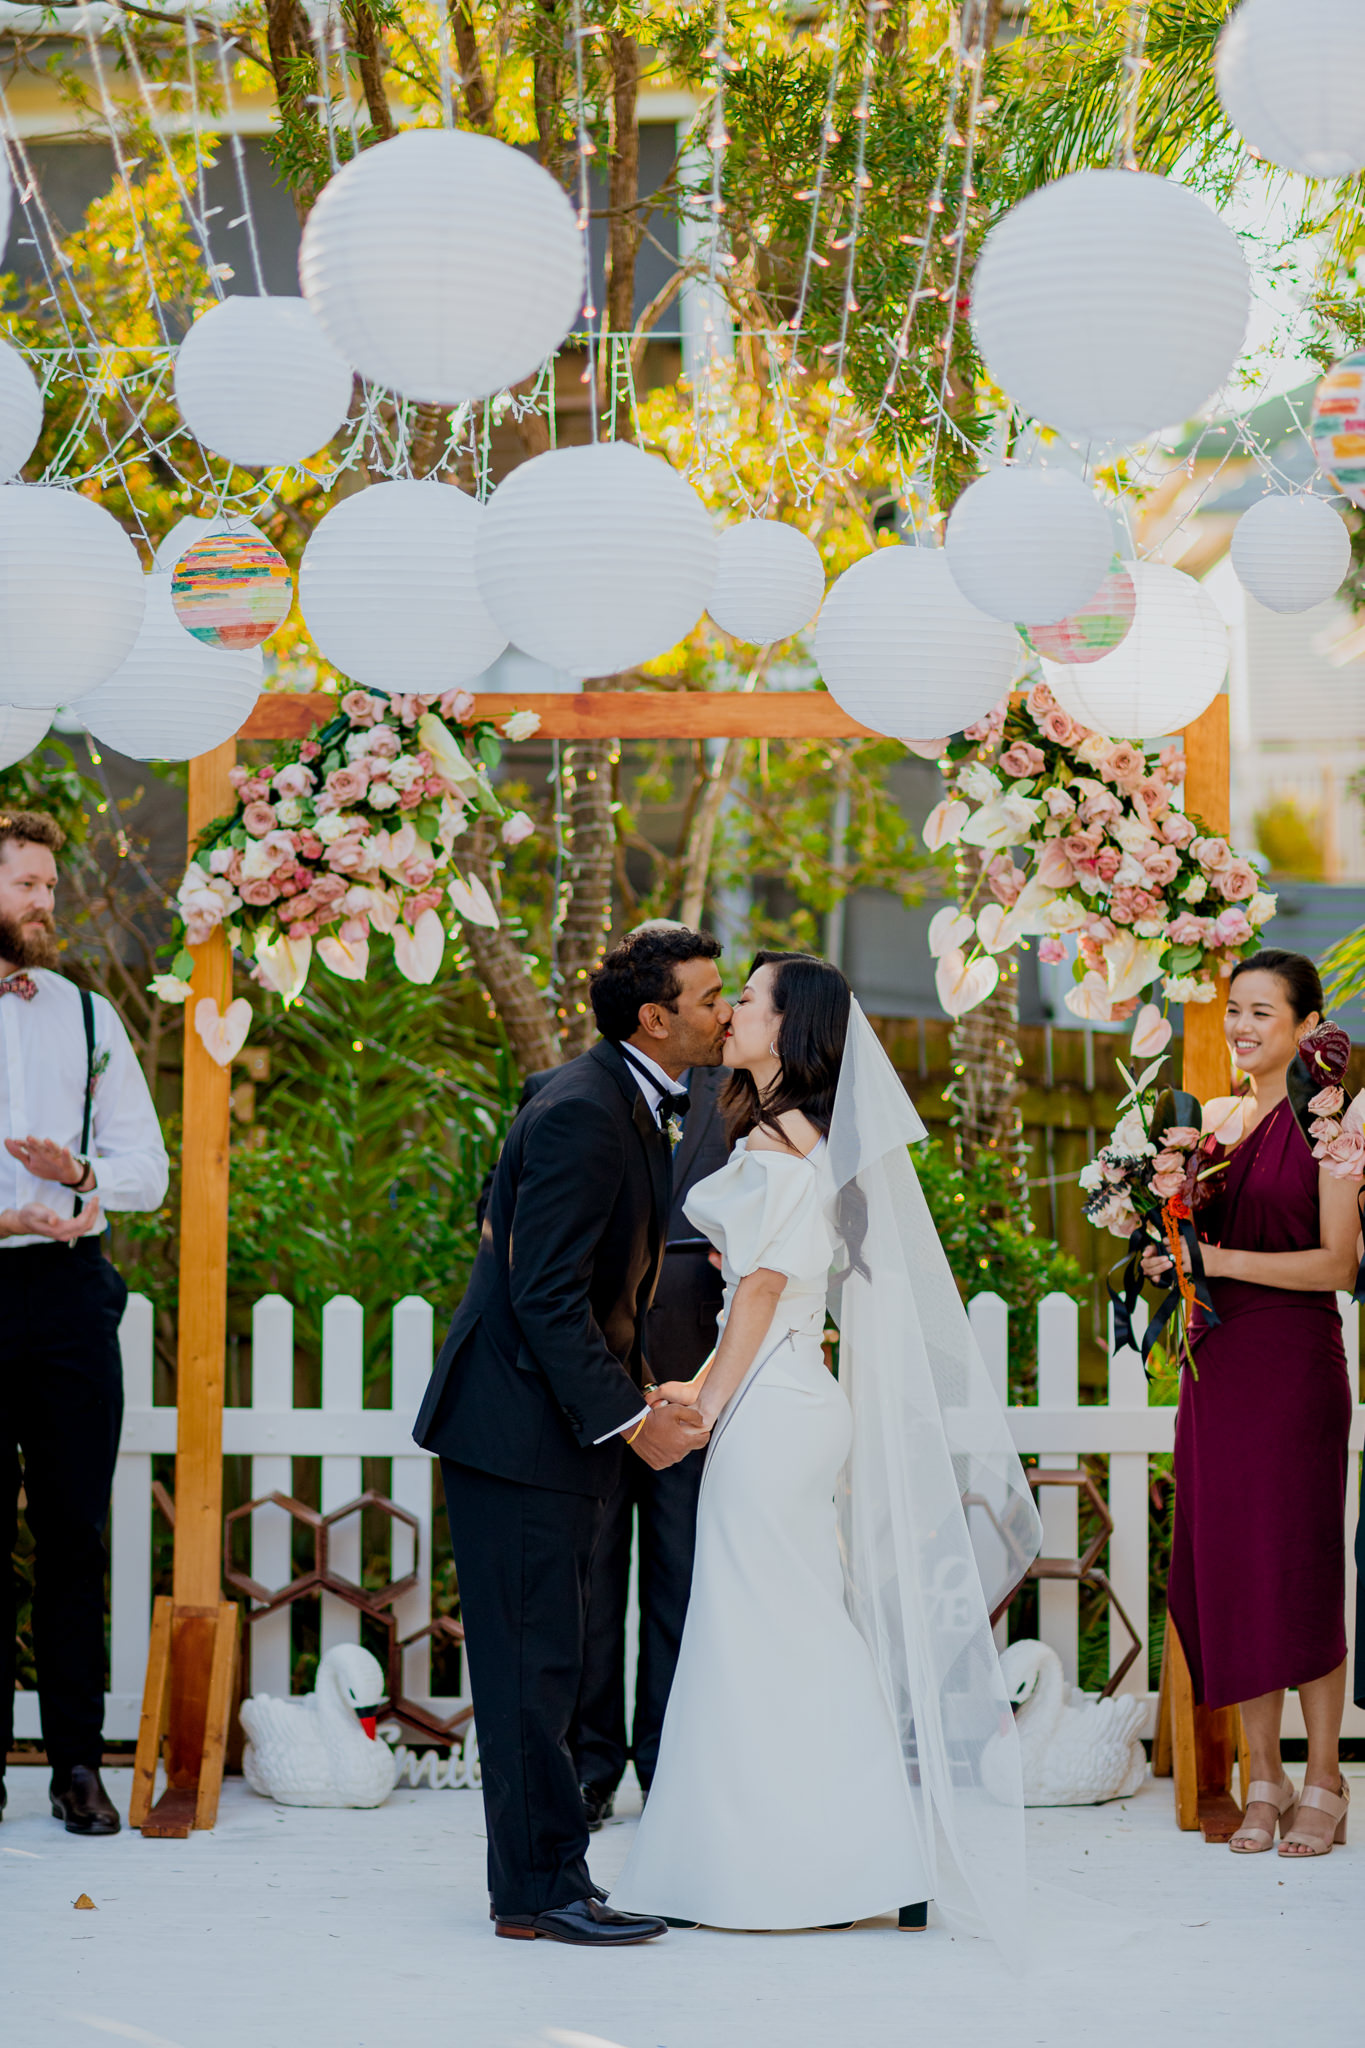 Wedding couple kisses during their wedding ceremony in a backyard